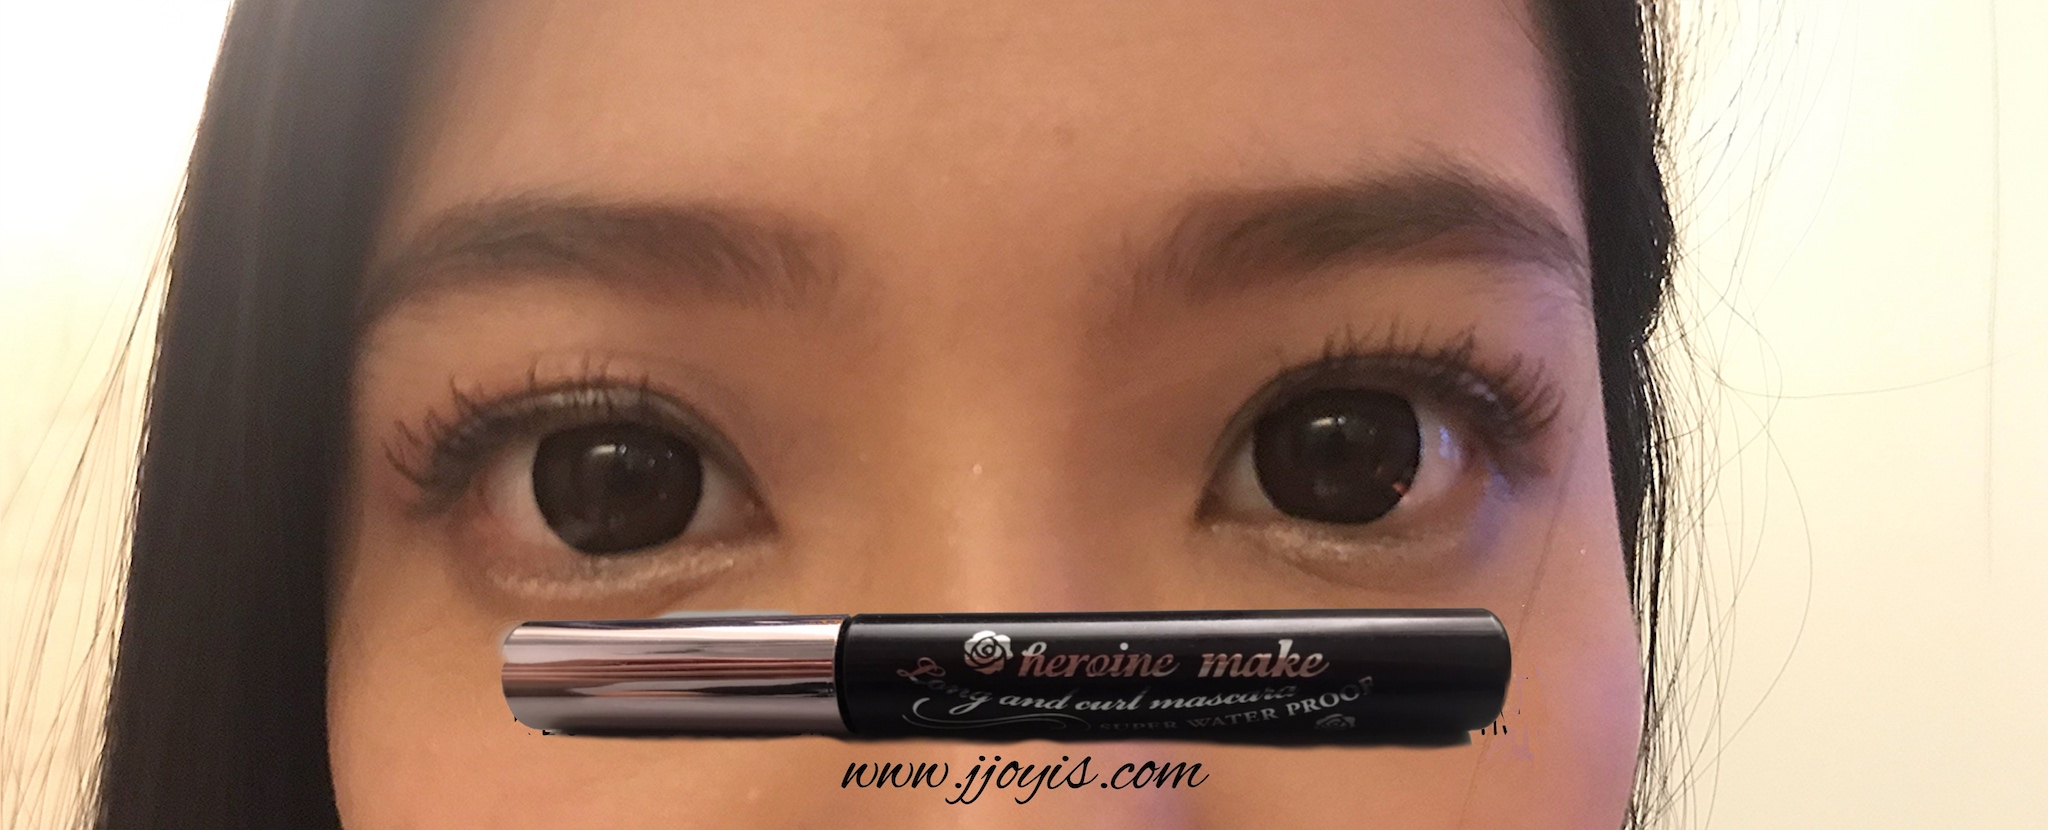 heroine make long and curl mascara waterproof review